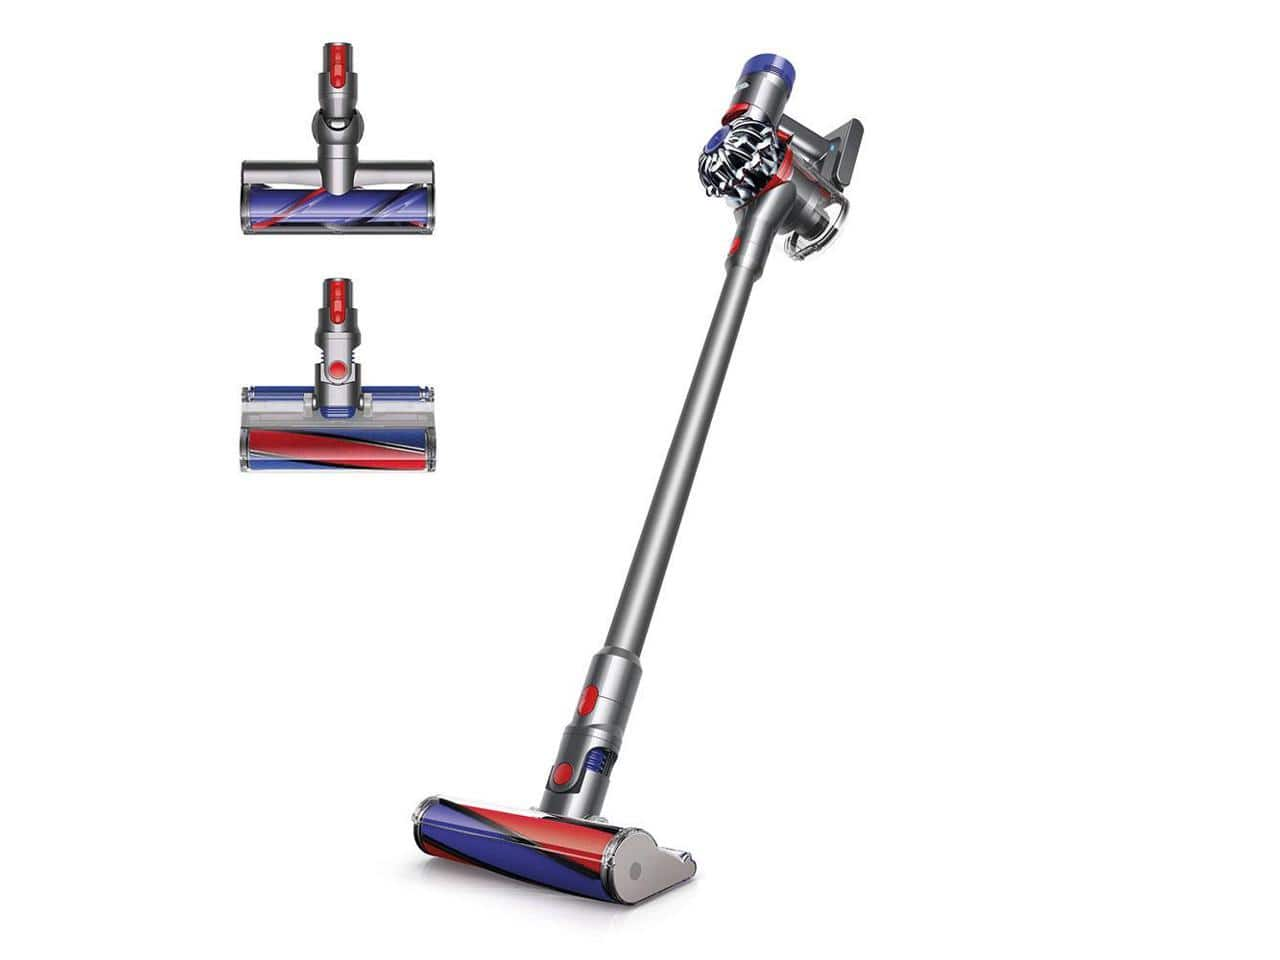 Brand New Dyson V8 Absolute $329.99 FREE S&H and No Tax